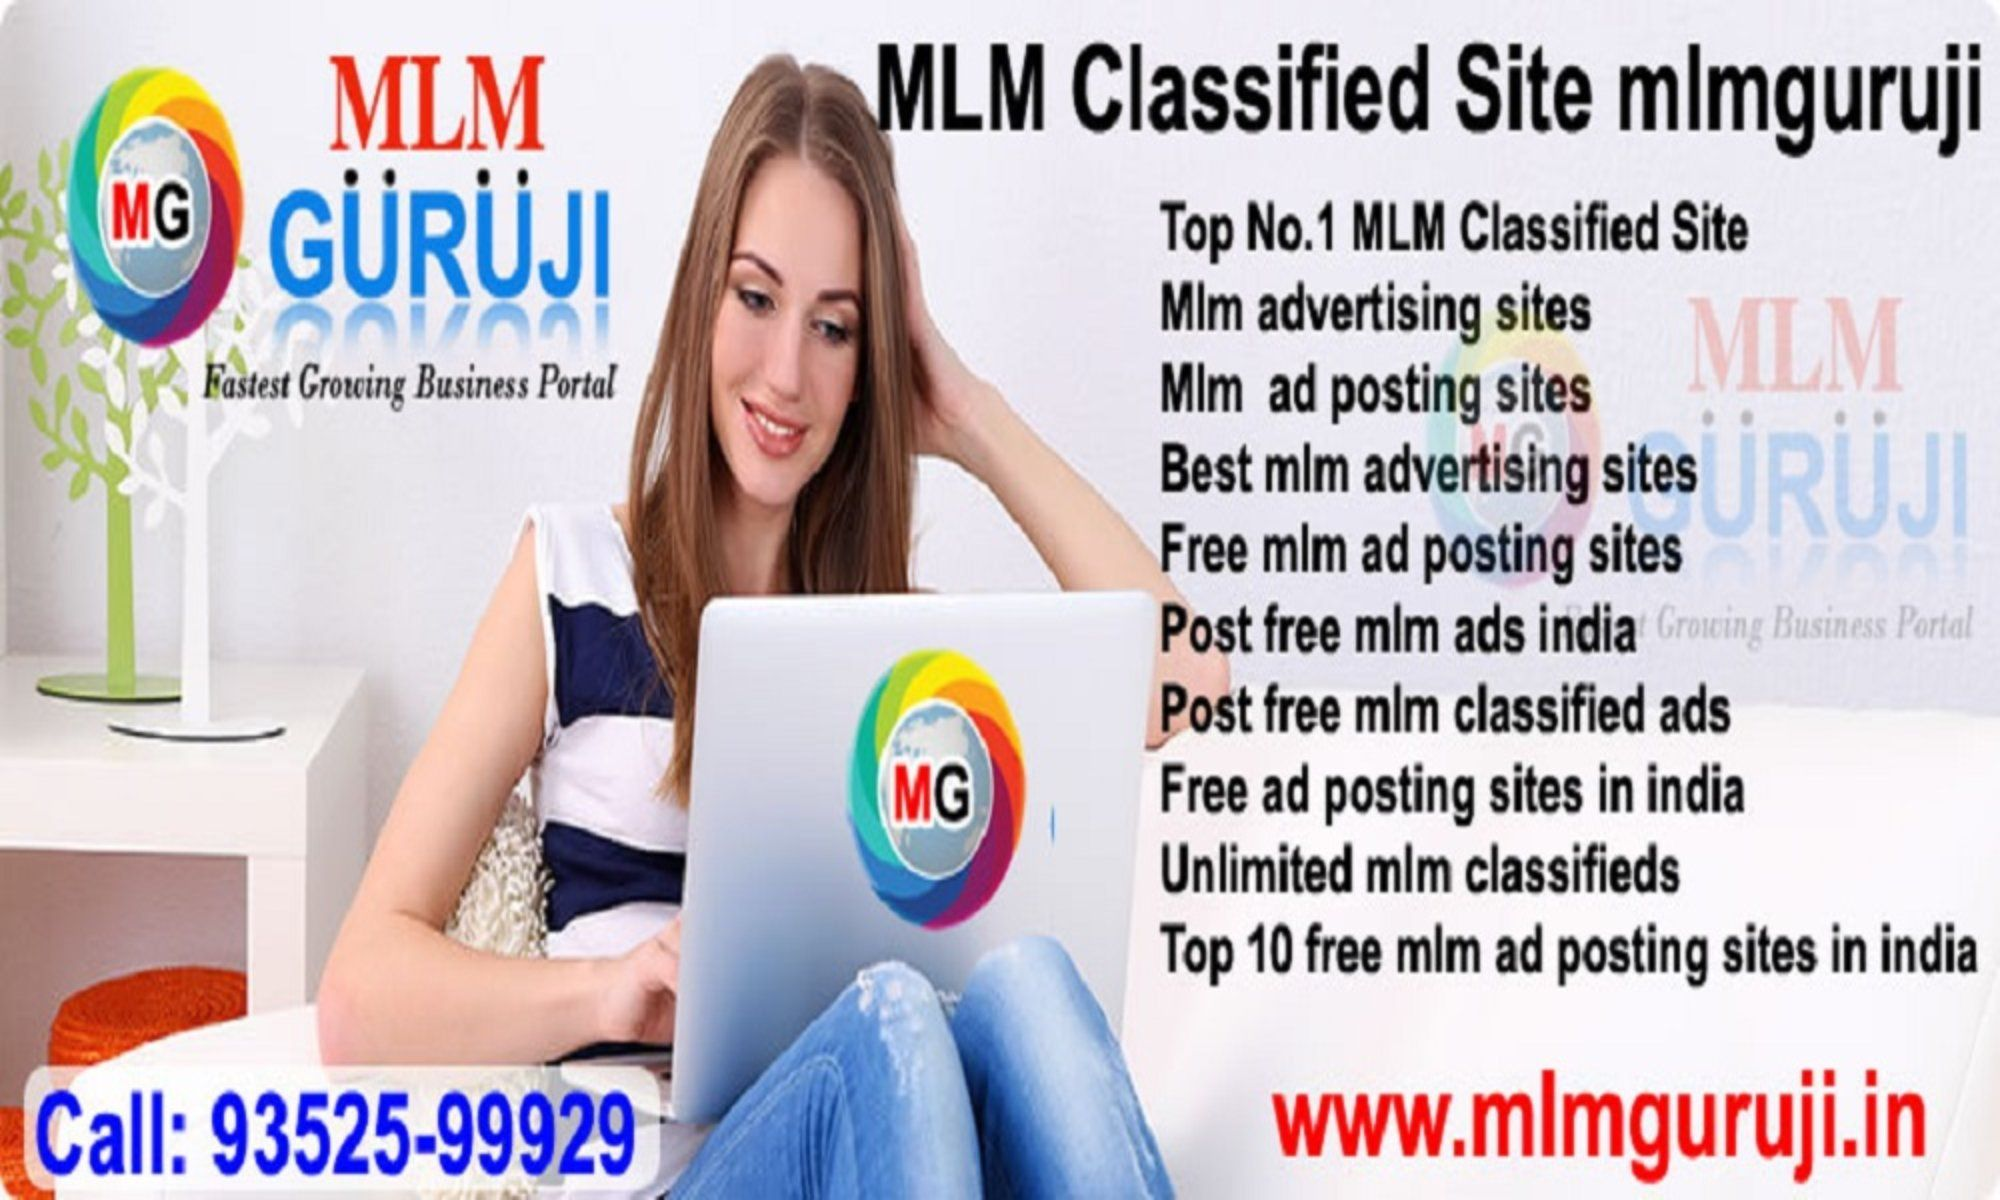 Post your mlm classified ads, Free MLM Classified website, MLM Ad